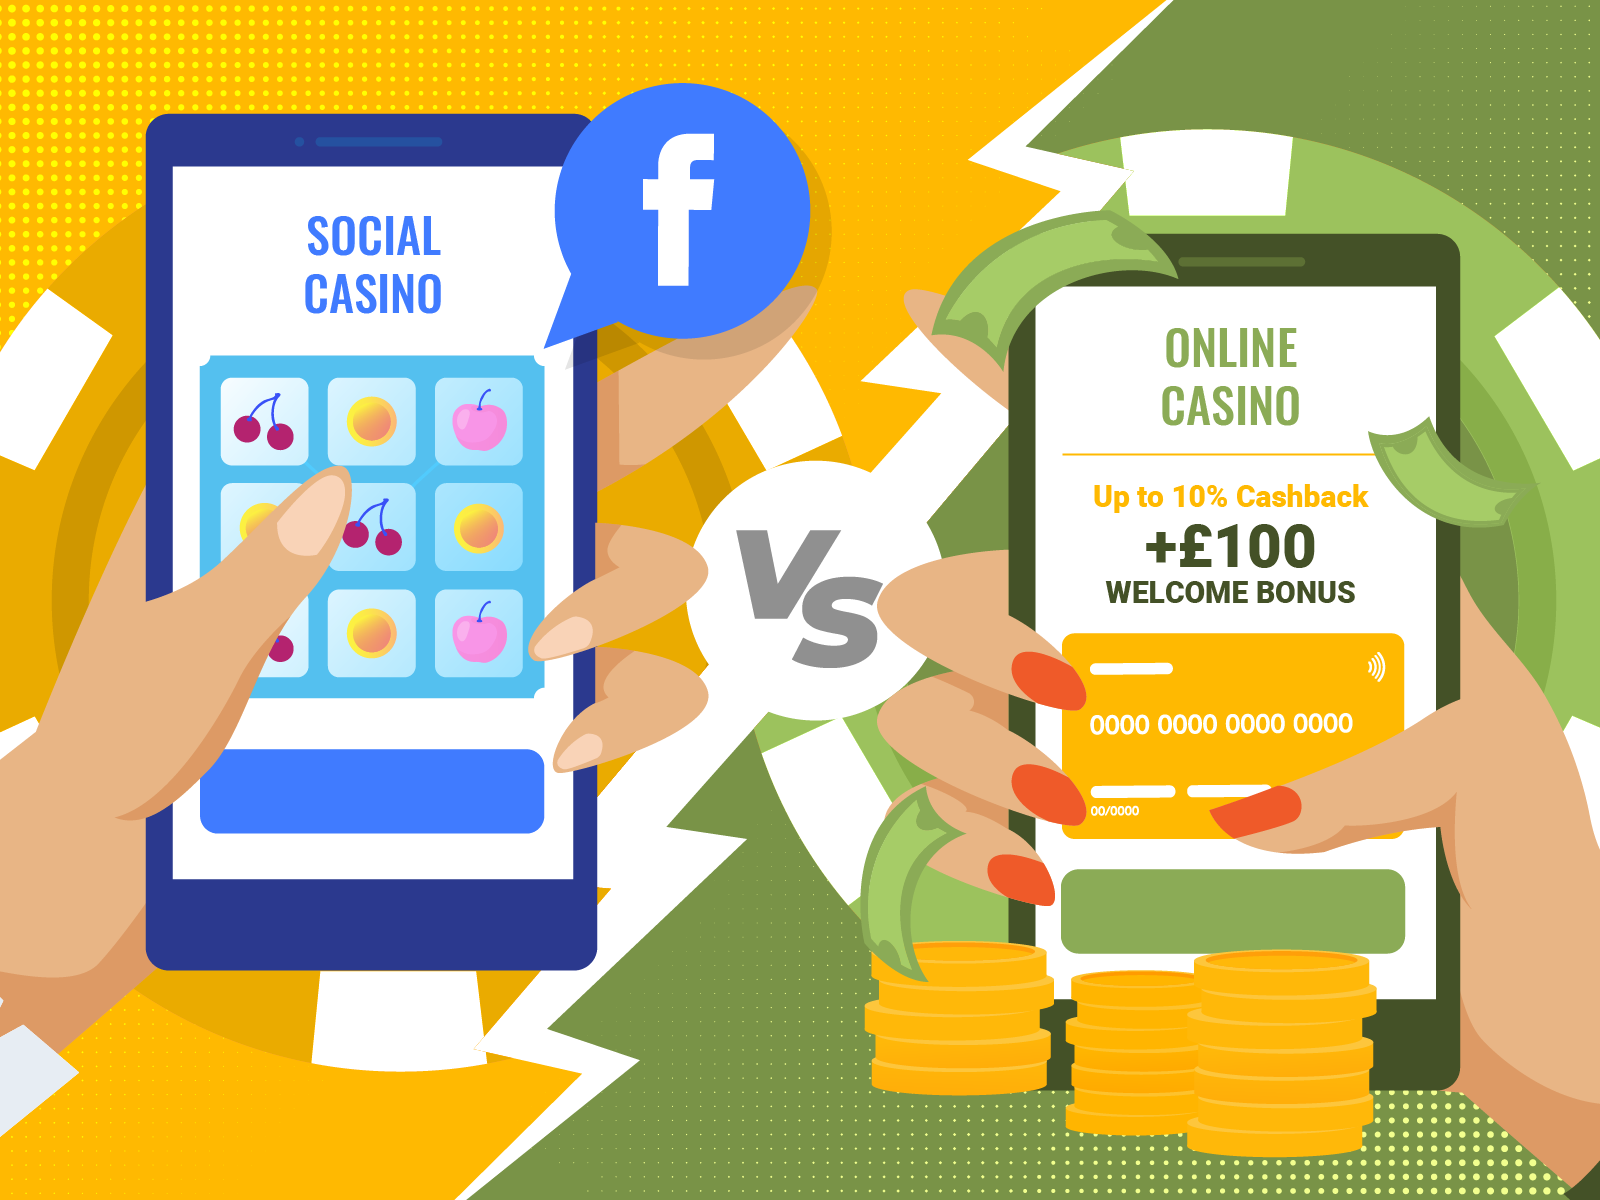 Social Casinos vs. Online Casinos: Which Is Better?